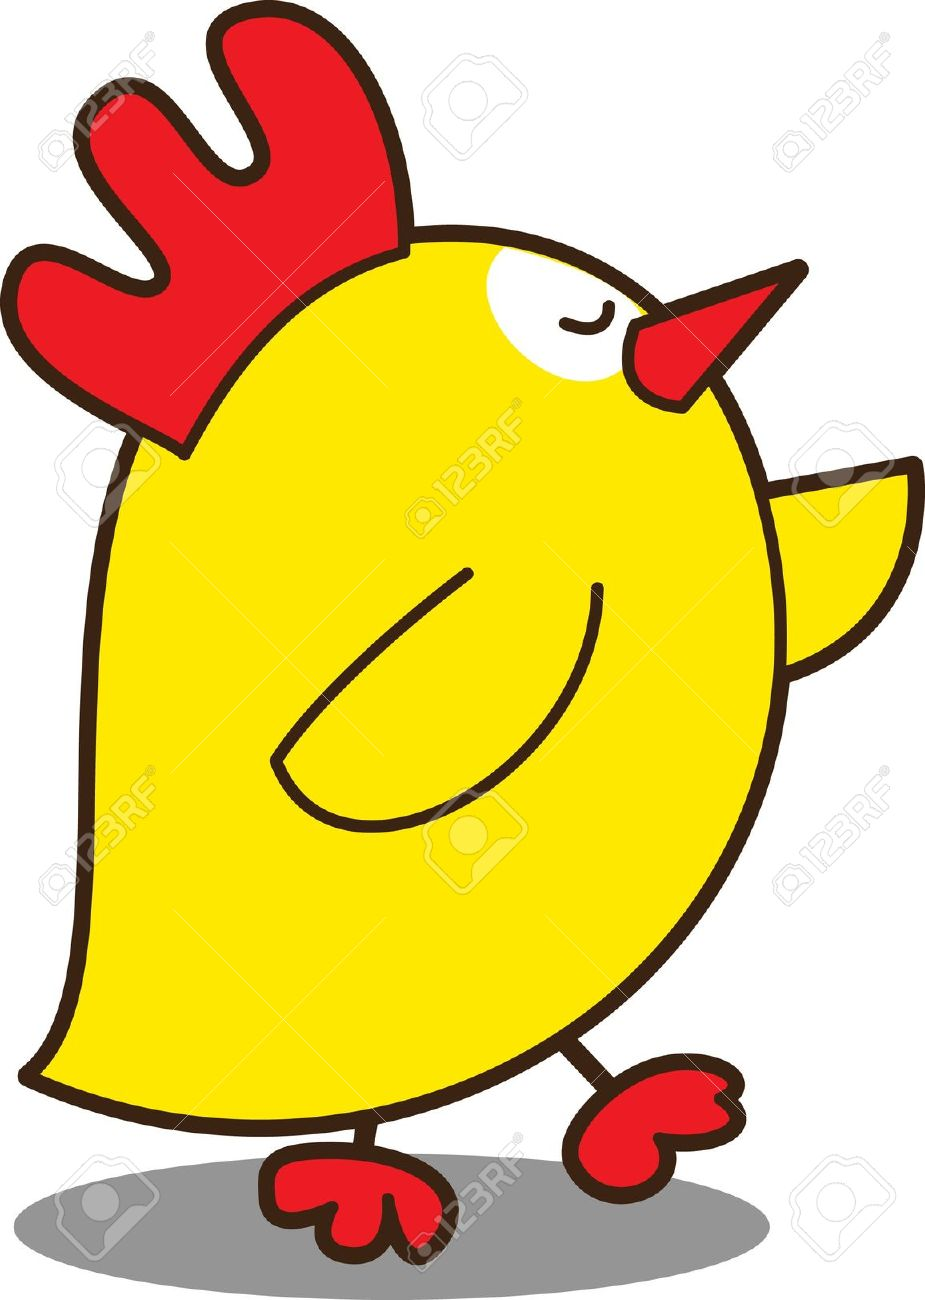 Cartoon Chickens Images - ClipArt Best